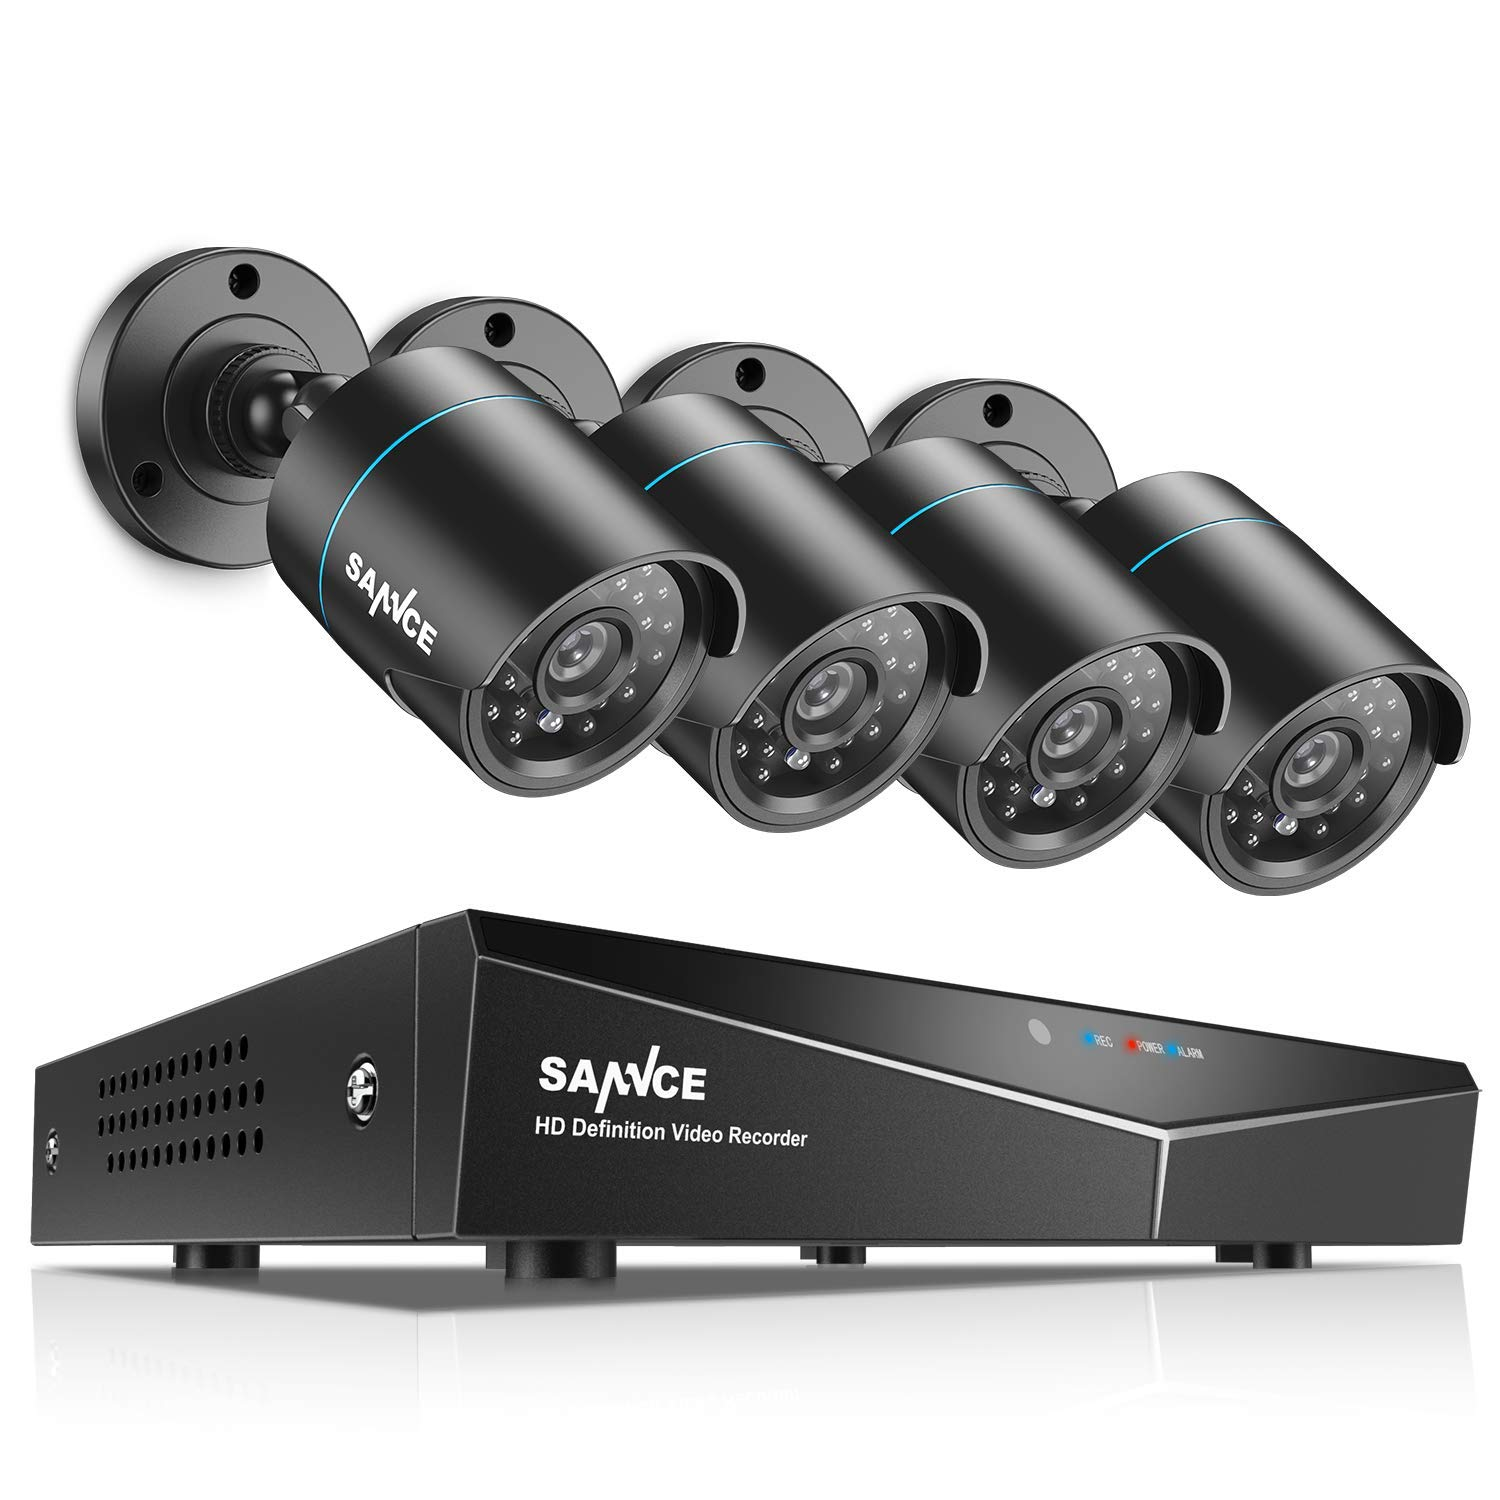 SANNCE 4CH HD 1080N Security Camera System DVR and 4x1.0MP Indoor Outdoor IP66 Weatherproof Bullet CCTV Cameras with IR 66ft Night Vision LEDs, Easy Remote Access ,Home Surveillance System,No HDD by SANNCE